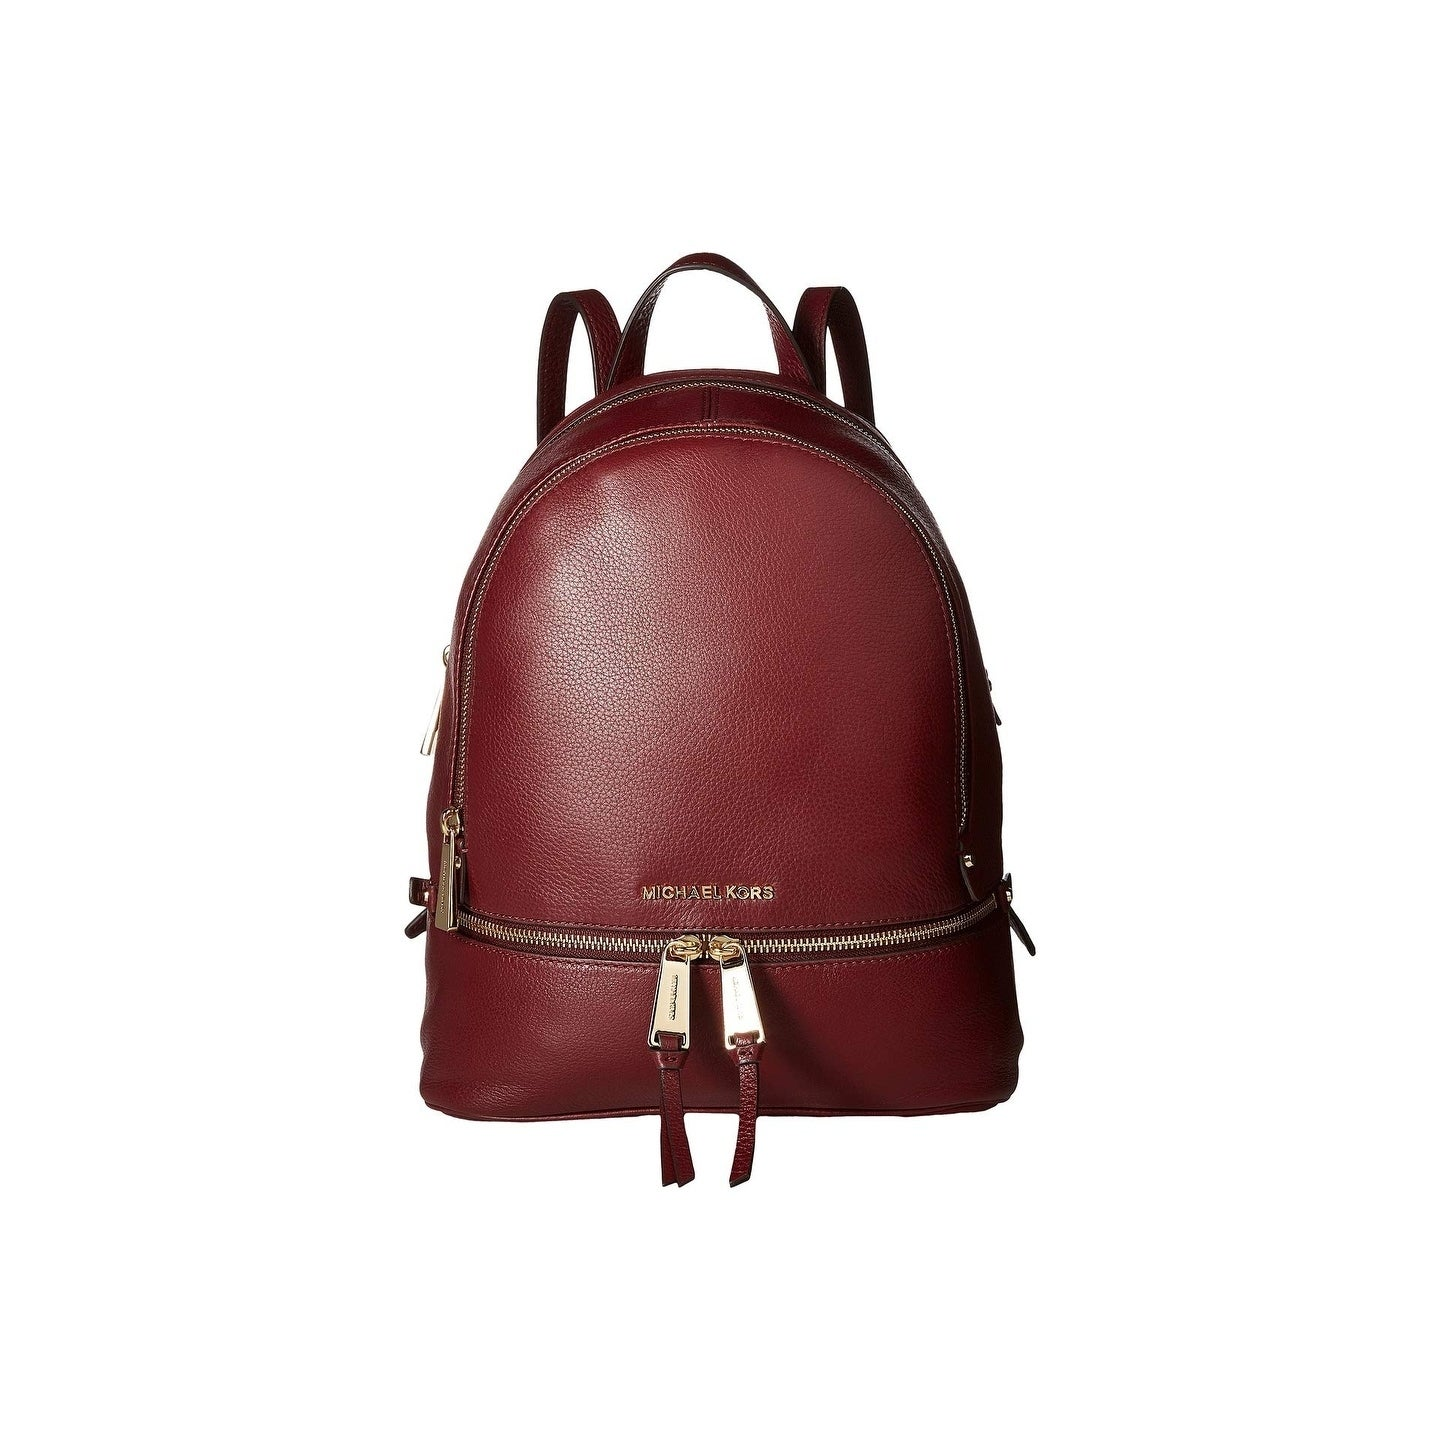 0798af1971b1 Shop MICHAEL Michael Kors Rhea Zip Small Backpack Oxblood - Free Shipping  Today - Overstock - 25443733